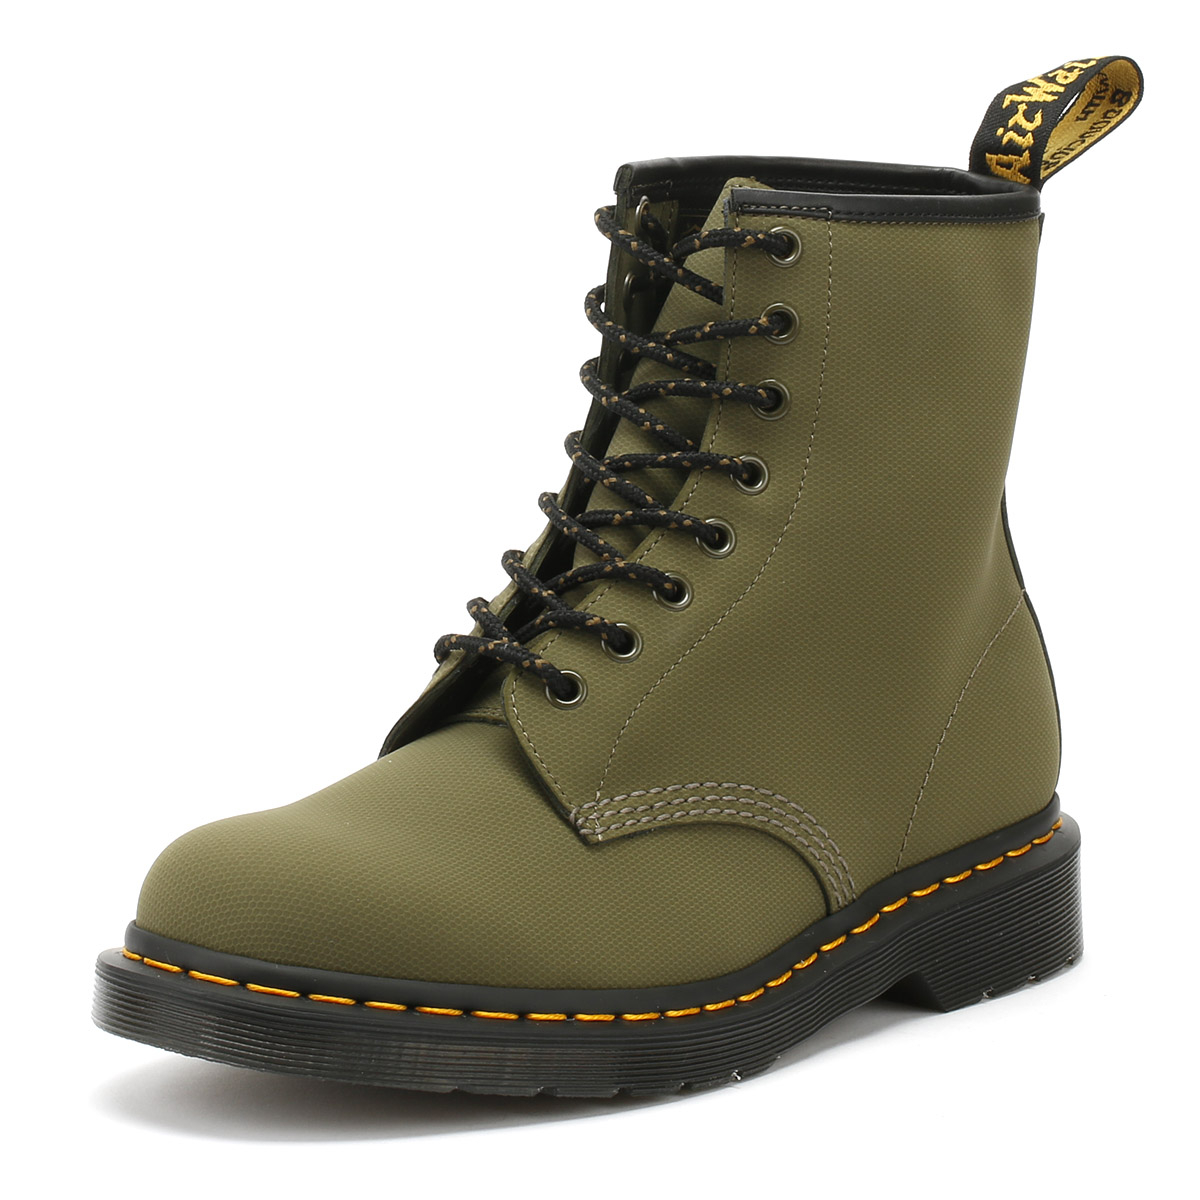 Details about Dr. Martens Mens Ankle Boots DMs Olive Taupe Green Broder  1460 Lace Up Shoes 9d2bd77c21e2